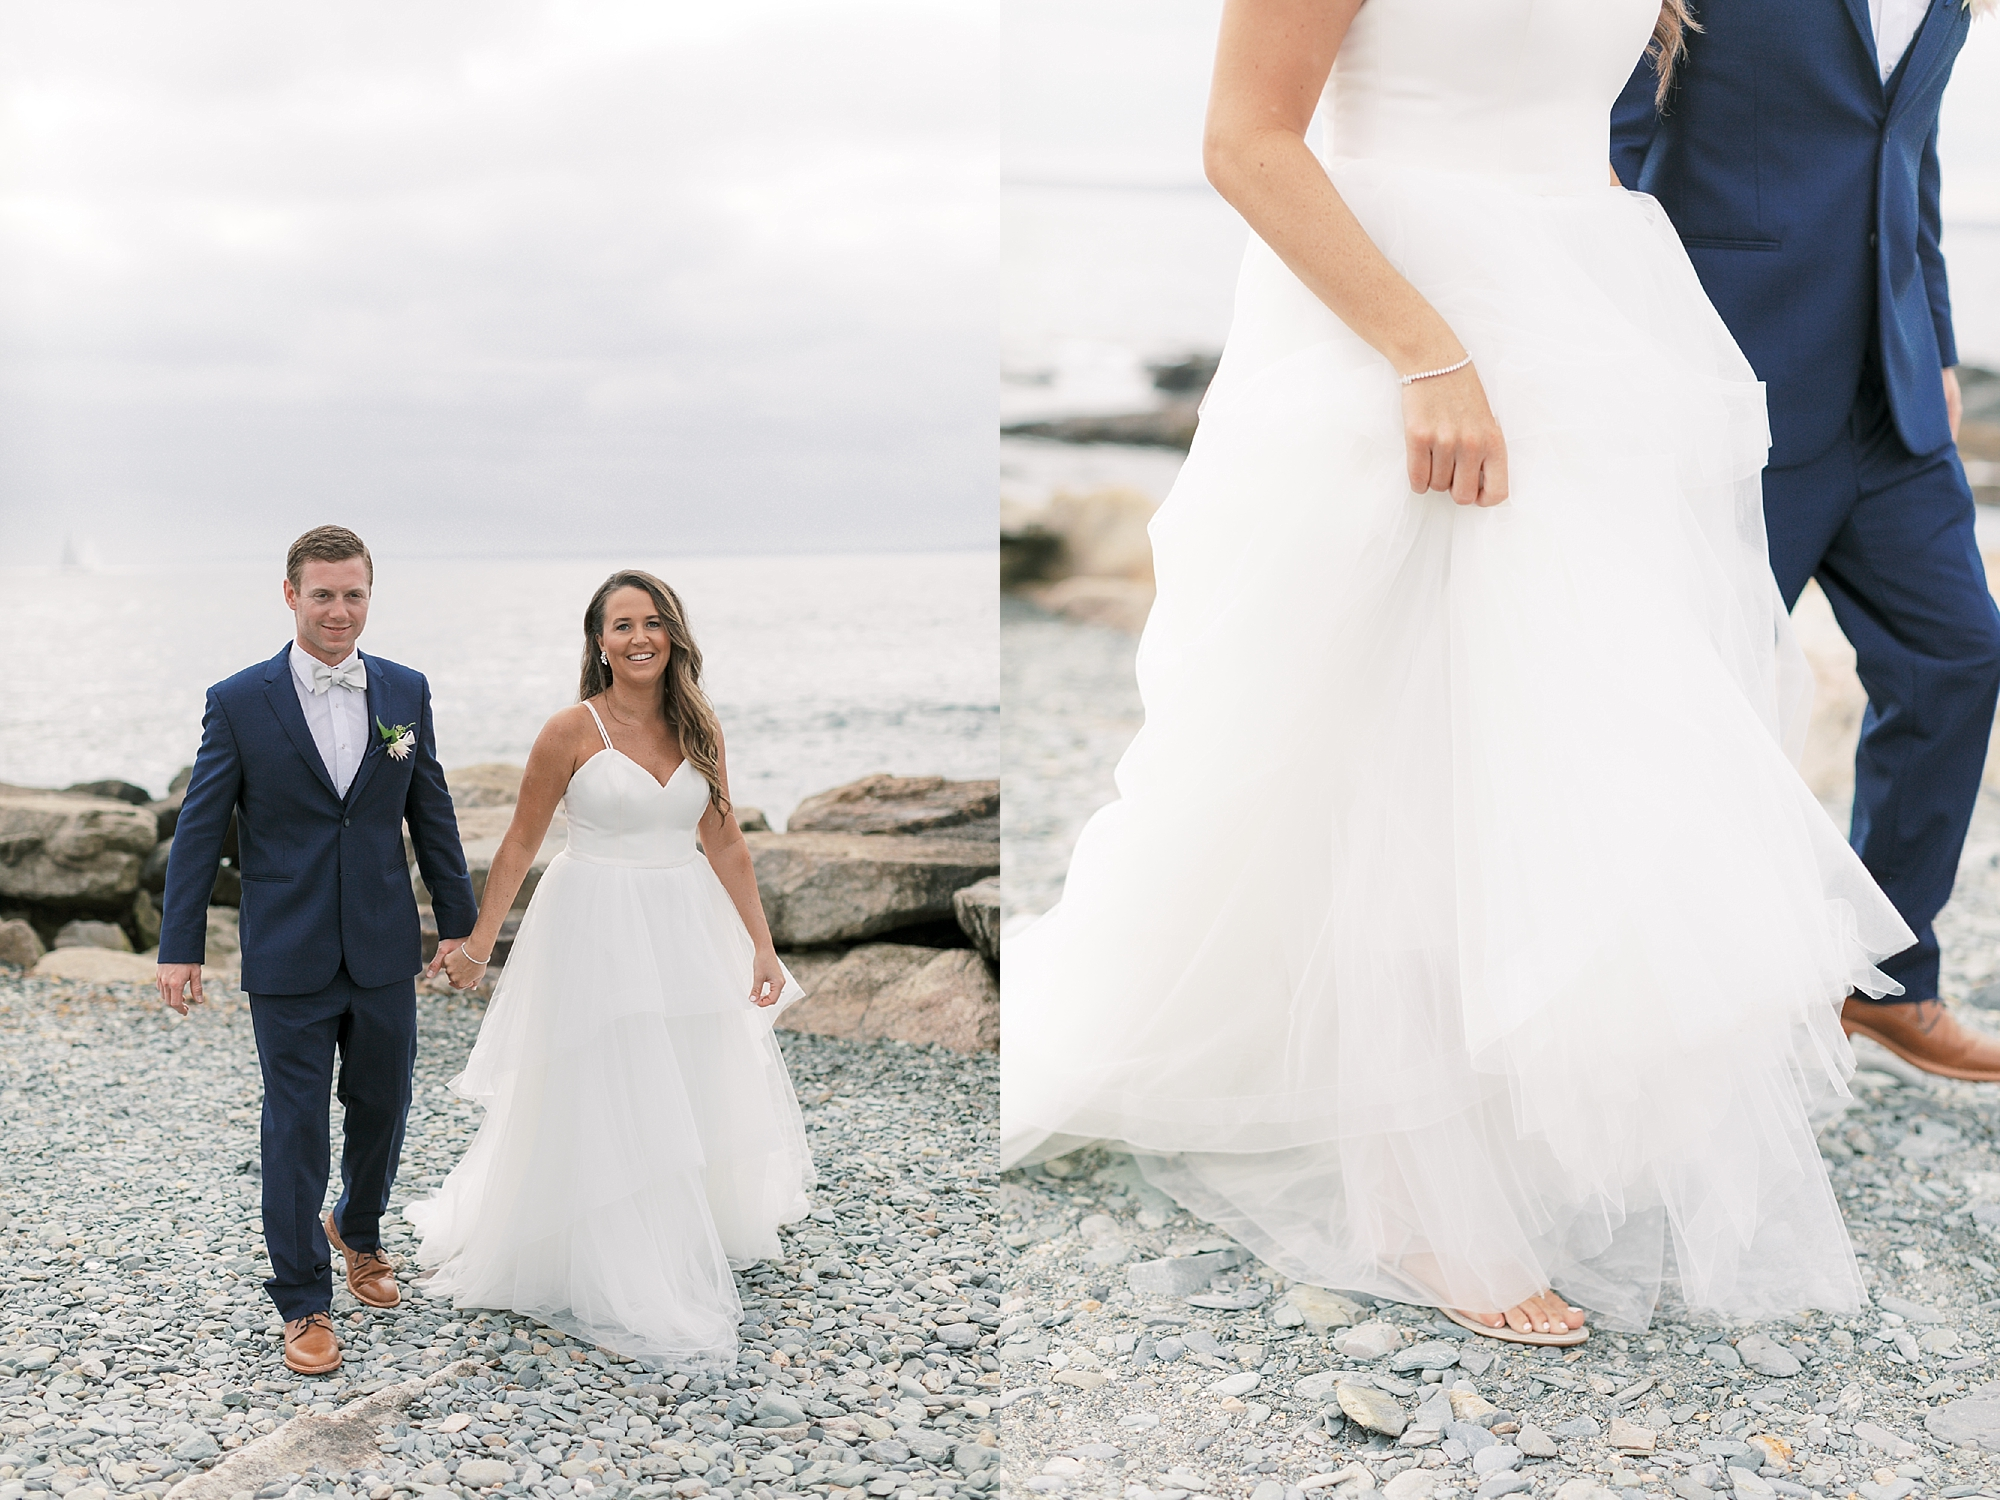 Coastal and Authentic Film Wedding Photography in Newport Rhode Island by Magdalena Studios 0033